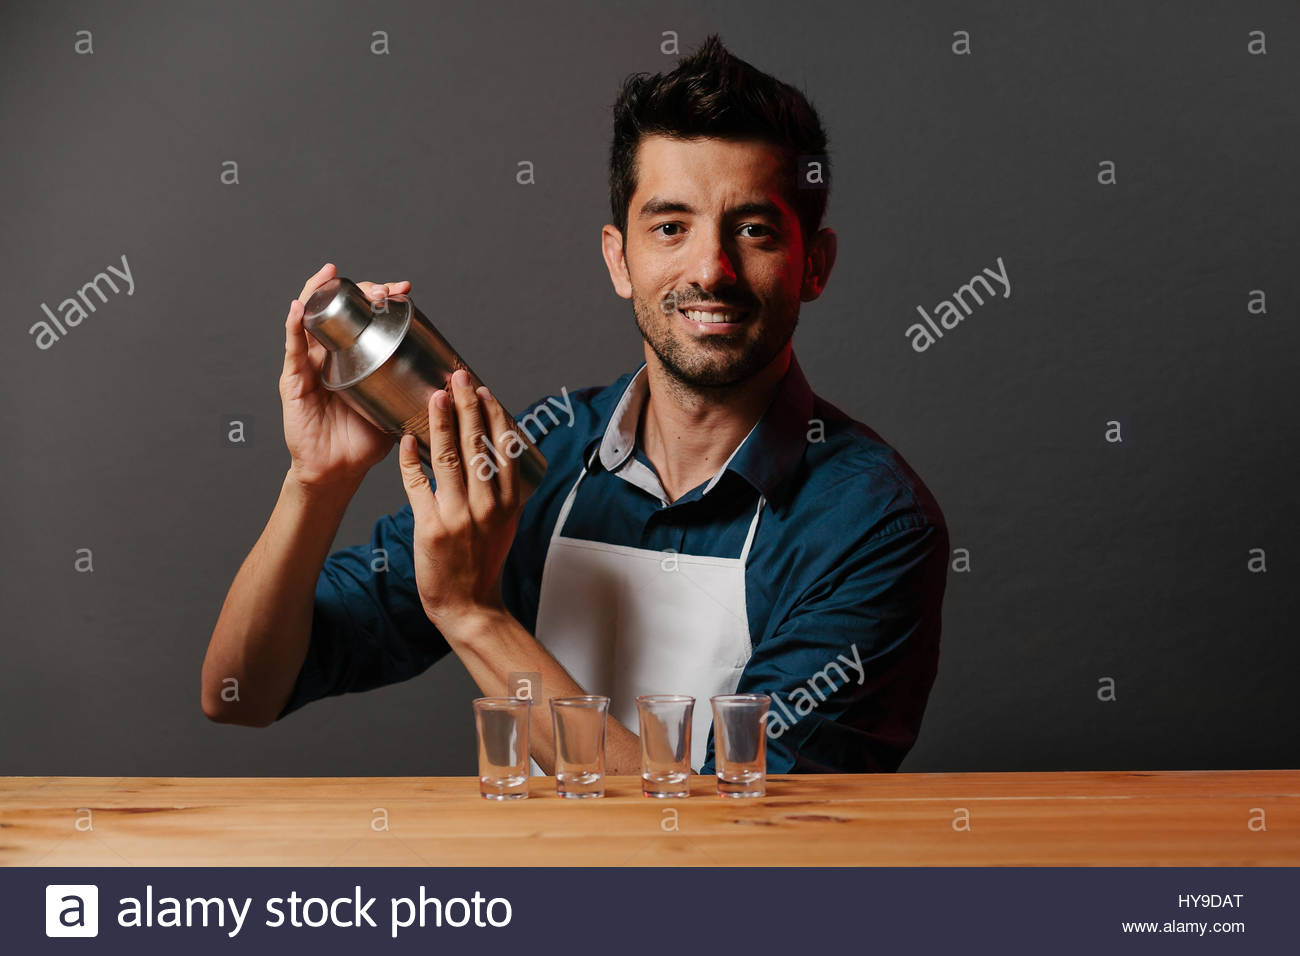 Barman makes cocktails with a shaker - Stock Image